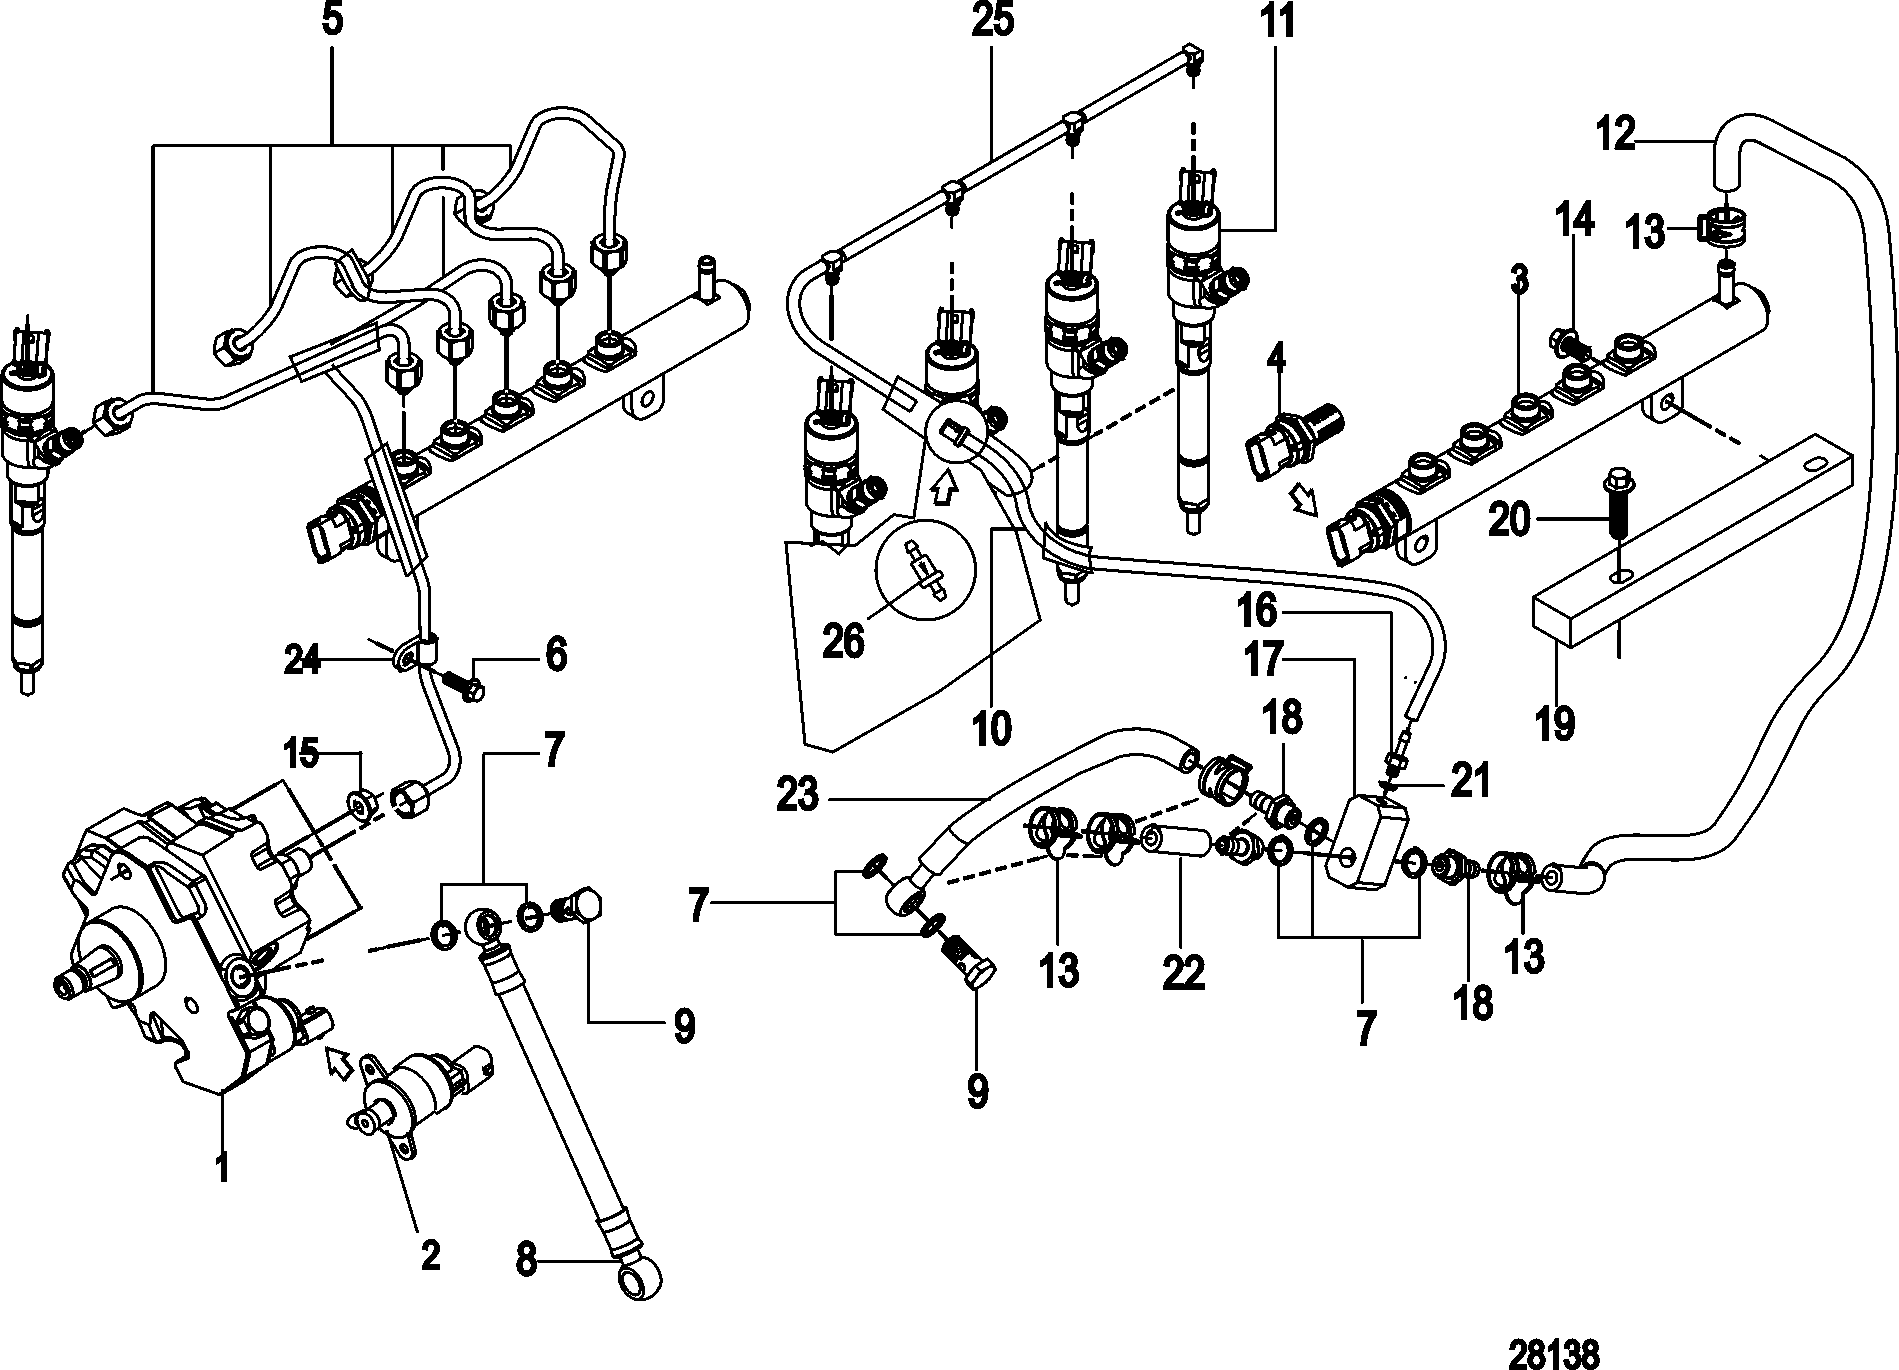 Fuel Injection, Pump, Rails, Lines and Injector FOR